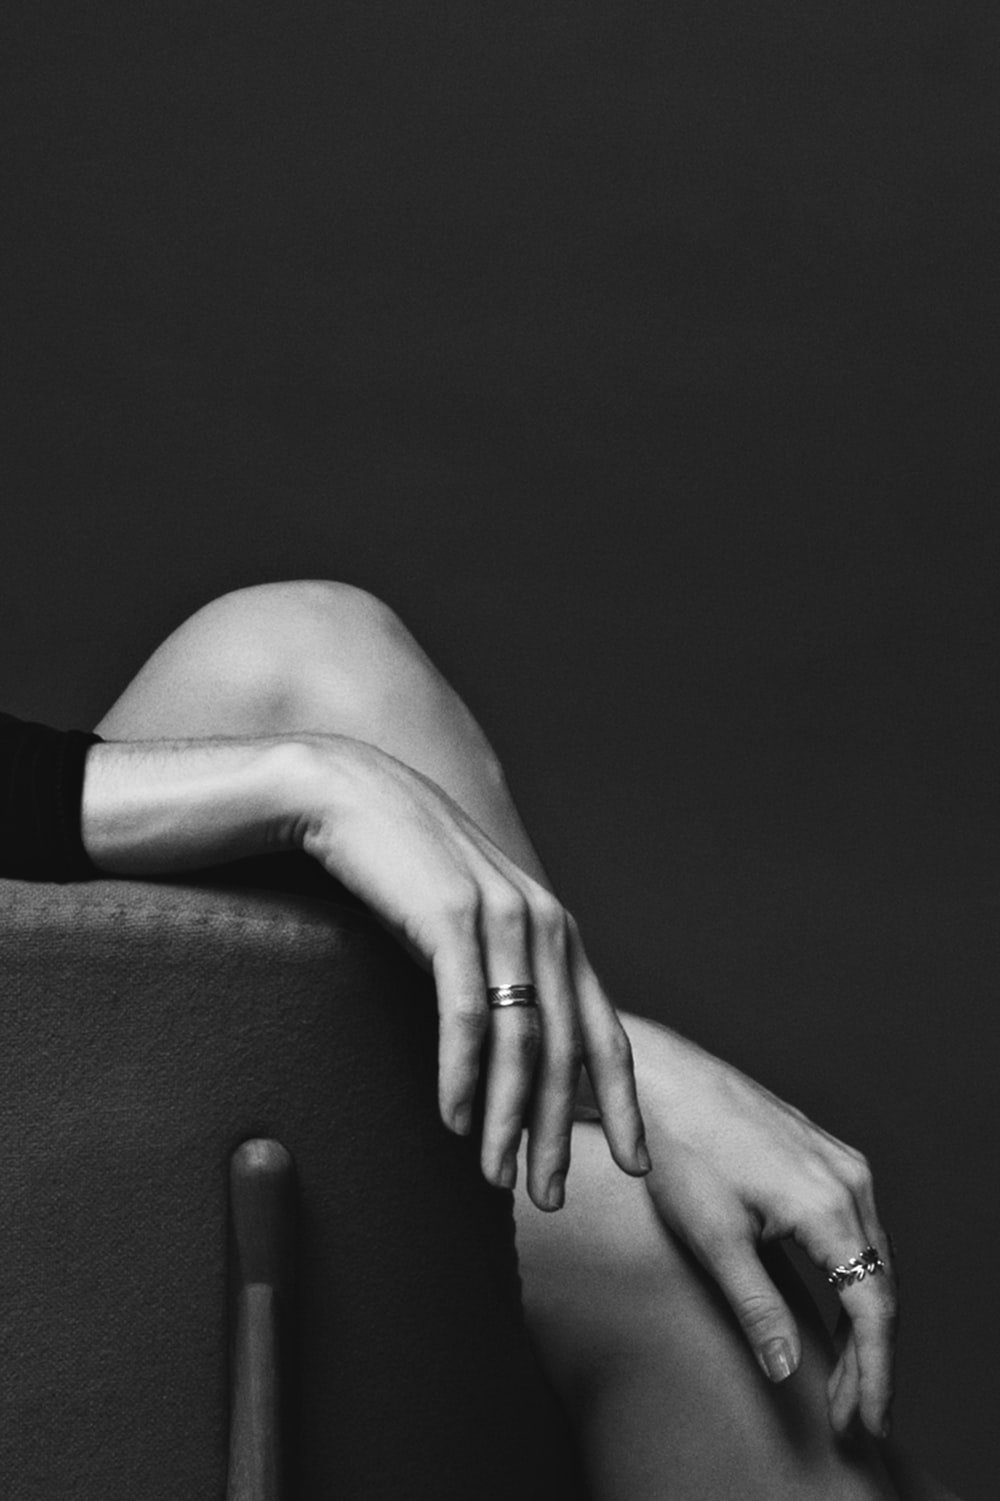 grayscale photography of sitting person wearing rings with both hands